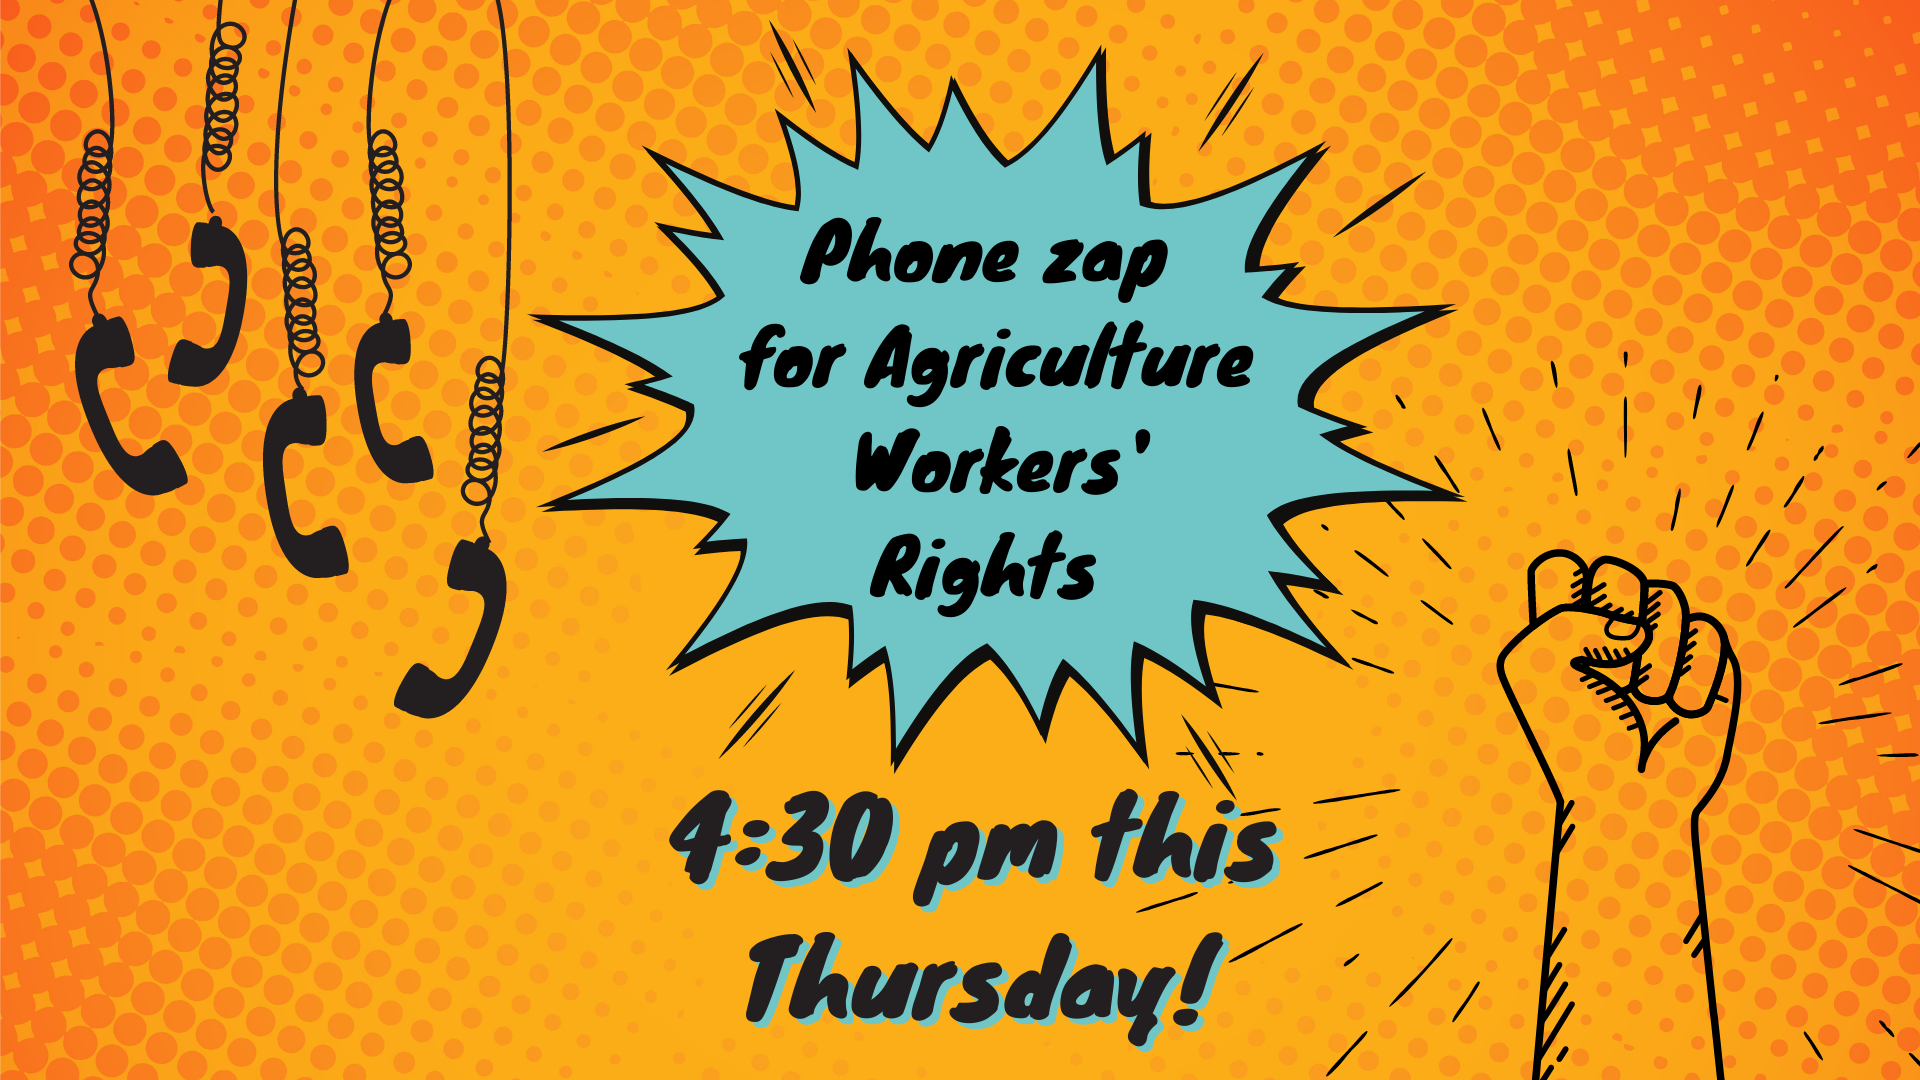 Phone zap for Agriculture Worker Rights 4:30 pm this thursday